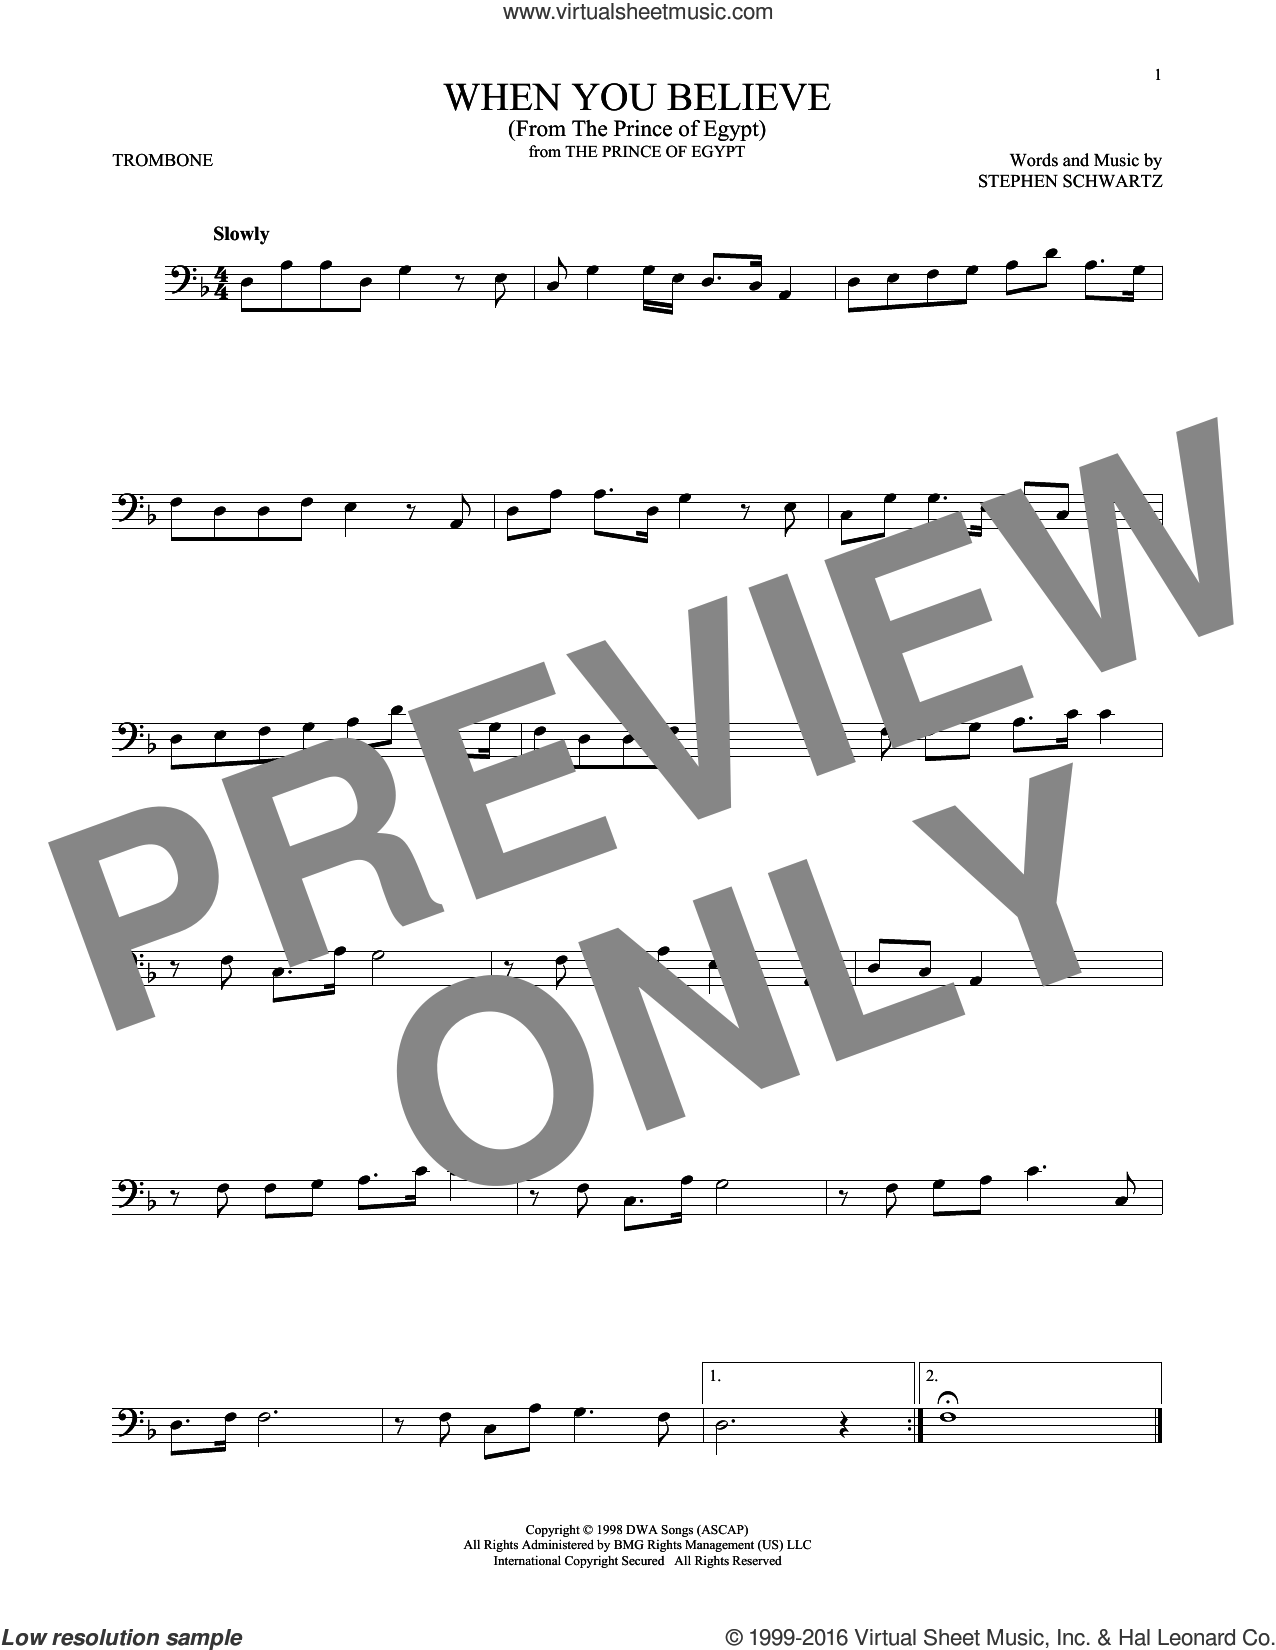 When You Believe (from The Prince Of Egypt) sheet music for trombone solo by Whitney Houston and Mariah Carey and Stephen Schwartz, intermediate skill level